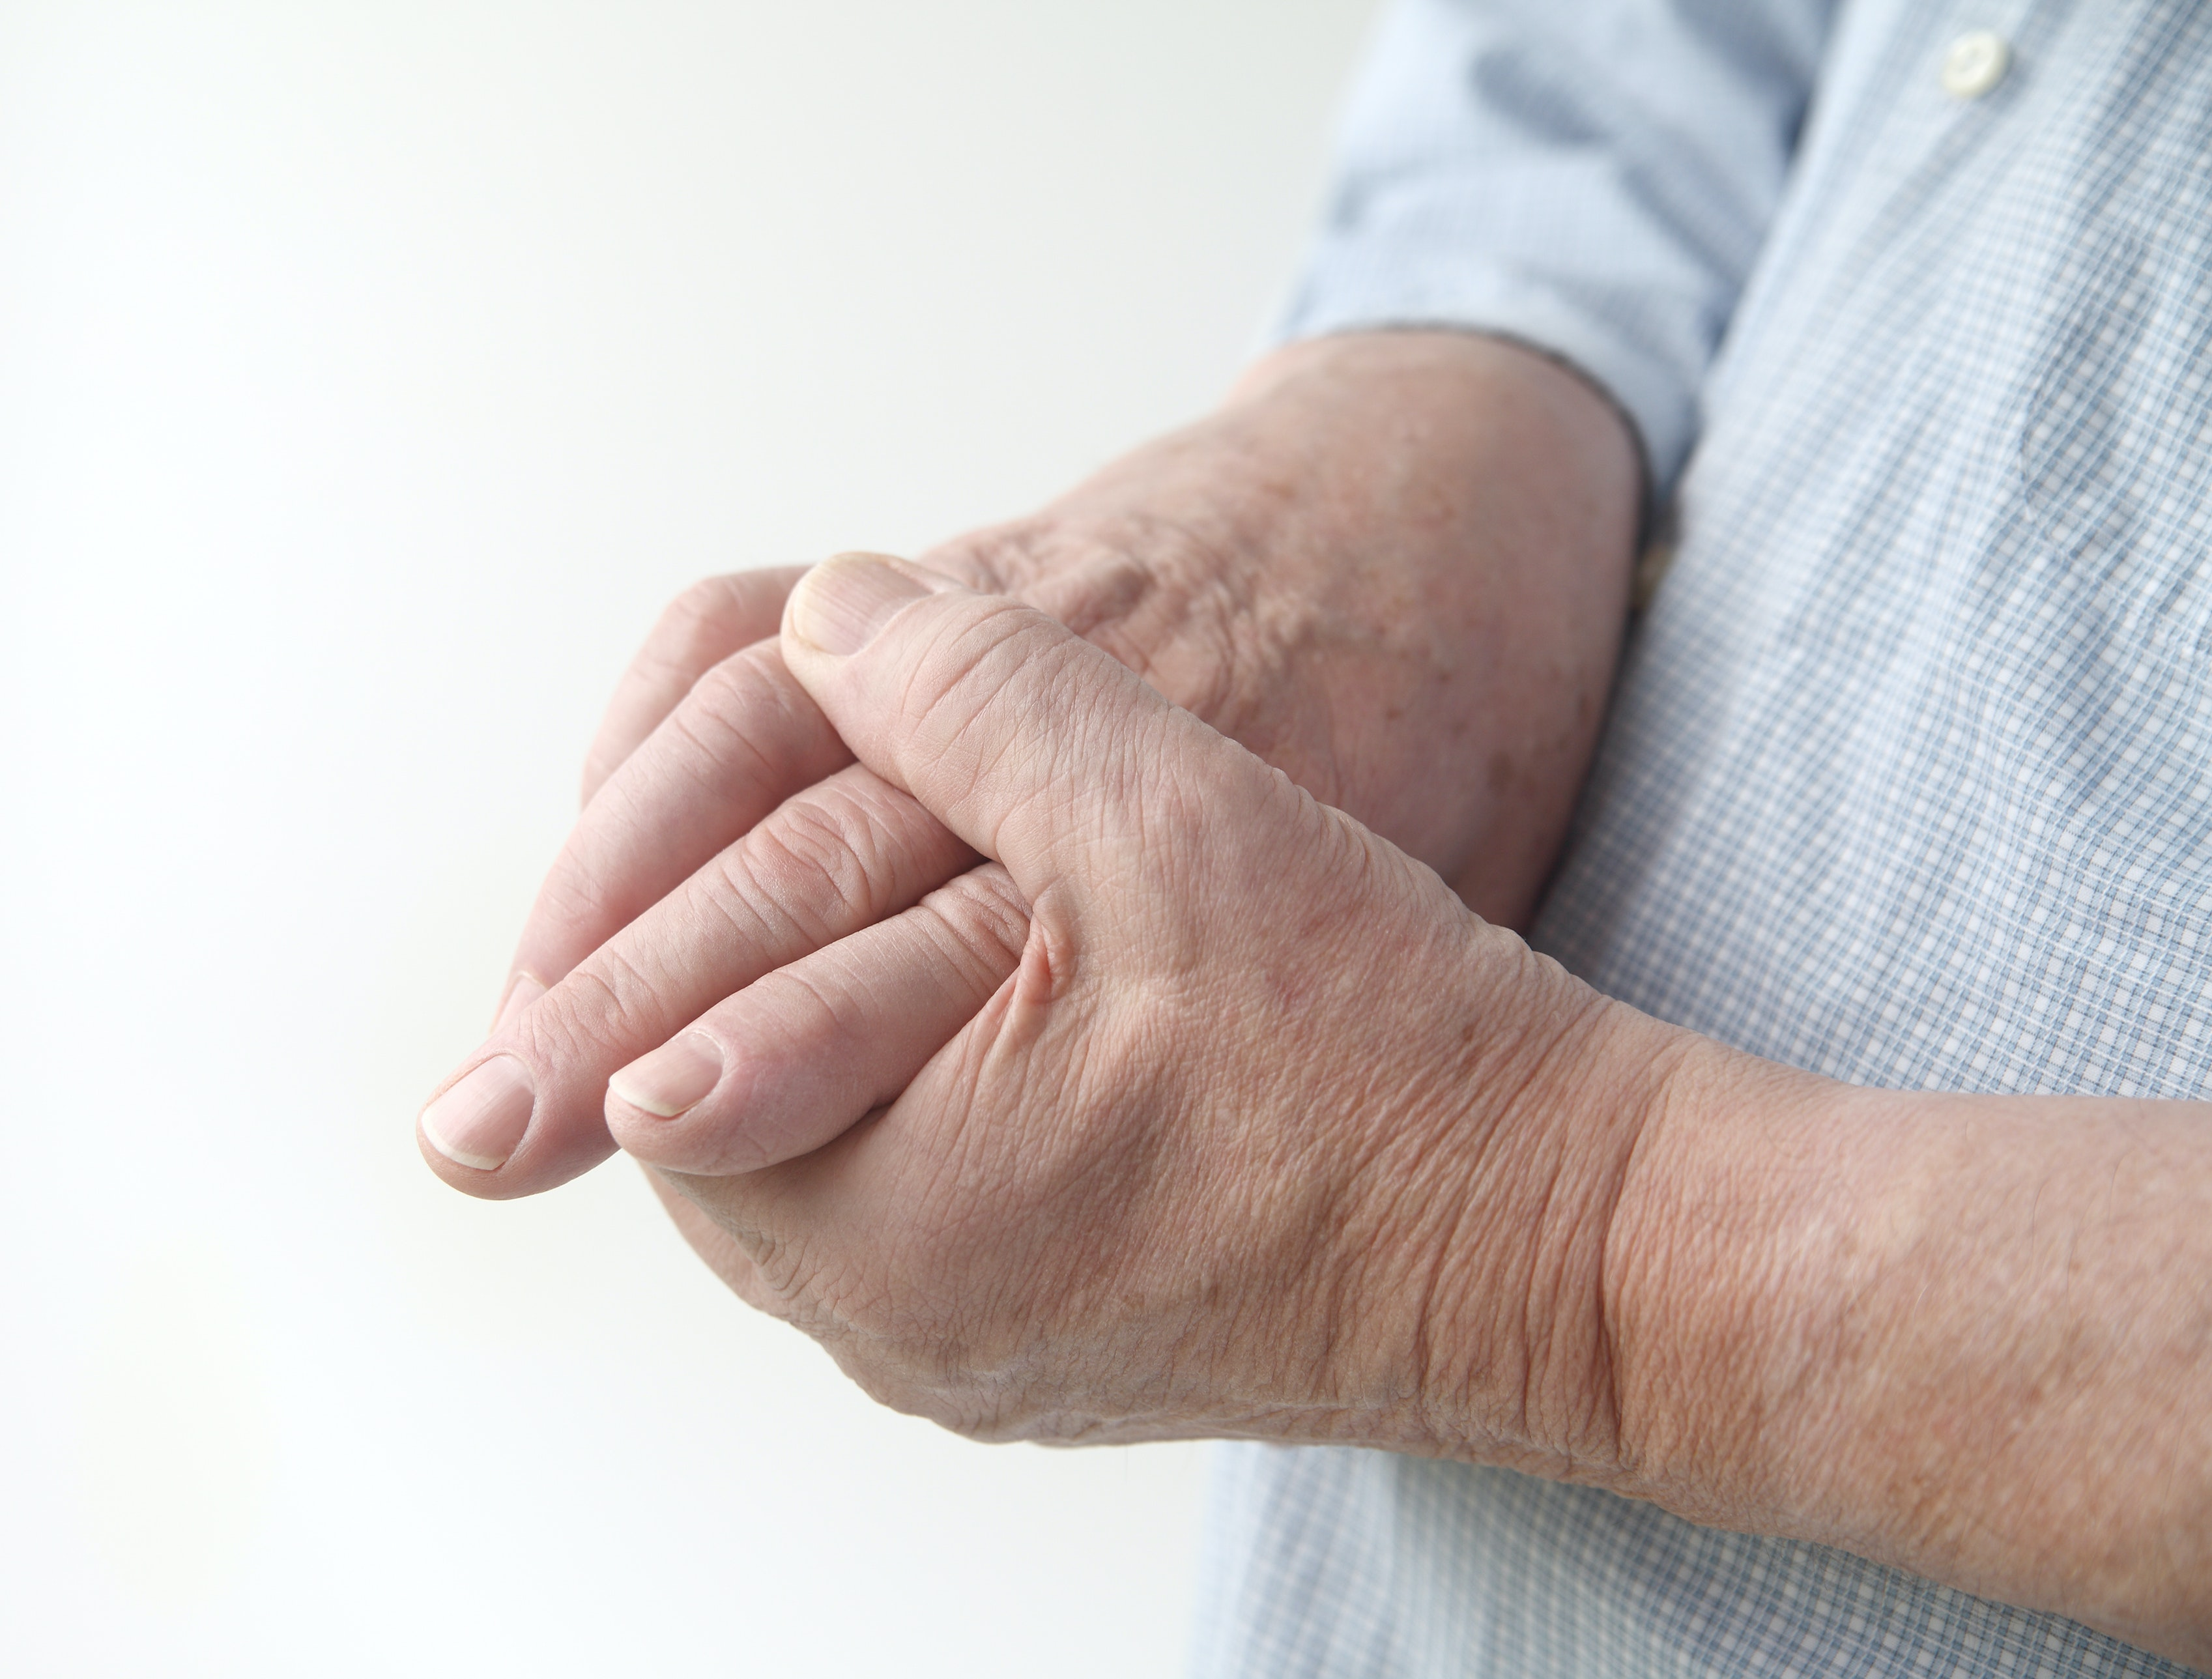 An image depicting a person suffering from hand tingling symptoms